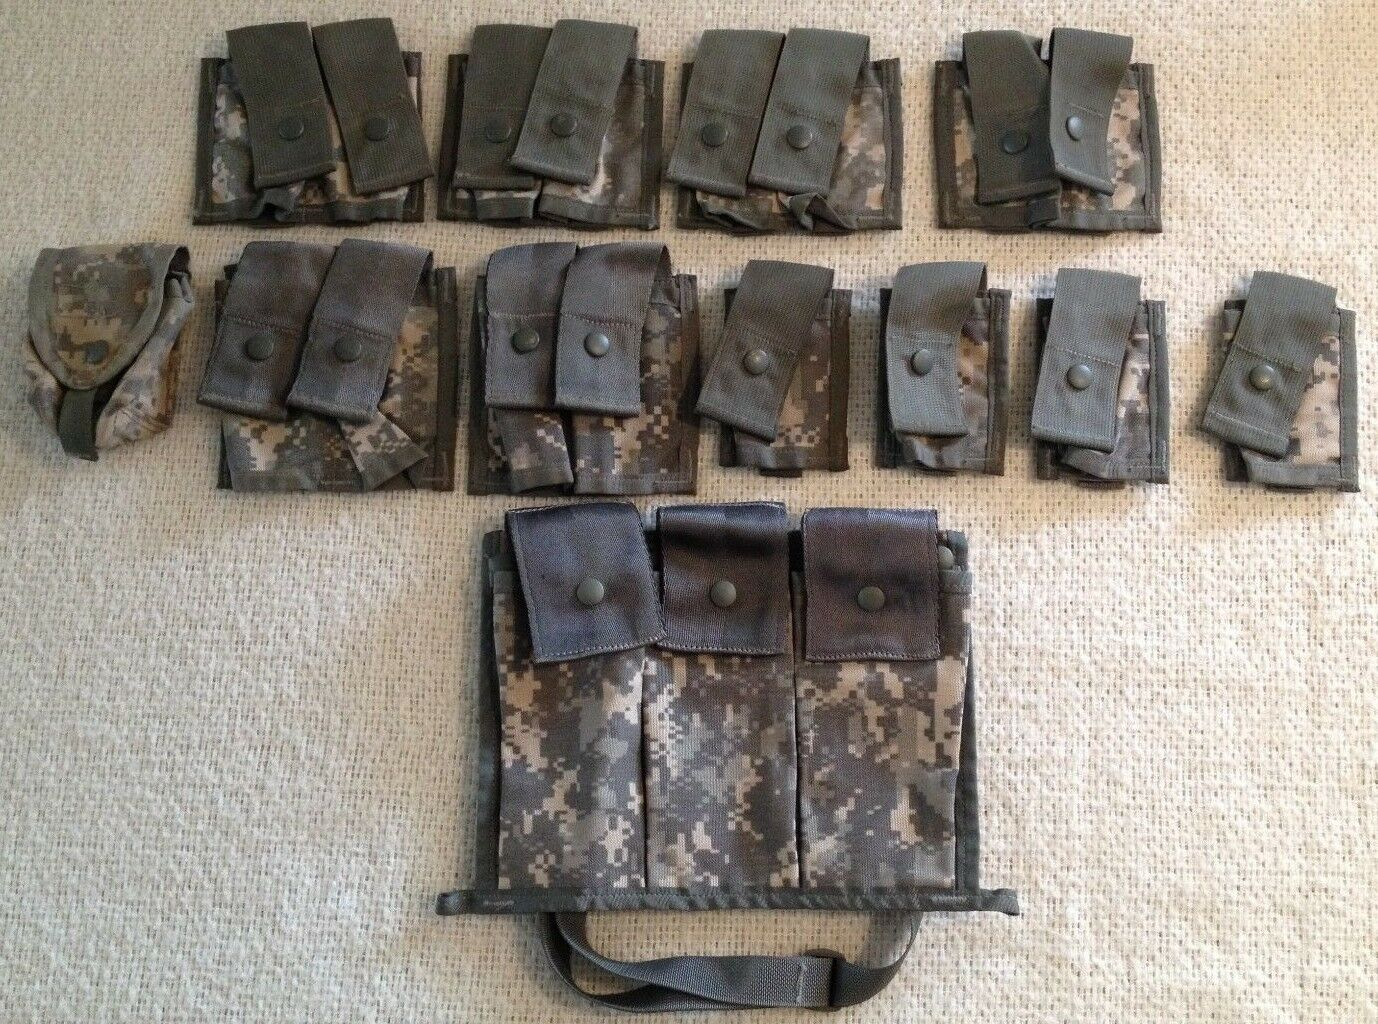 Lot of 12 Varioius MOLLE Ammo Pouches Digital Camouflage